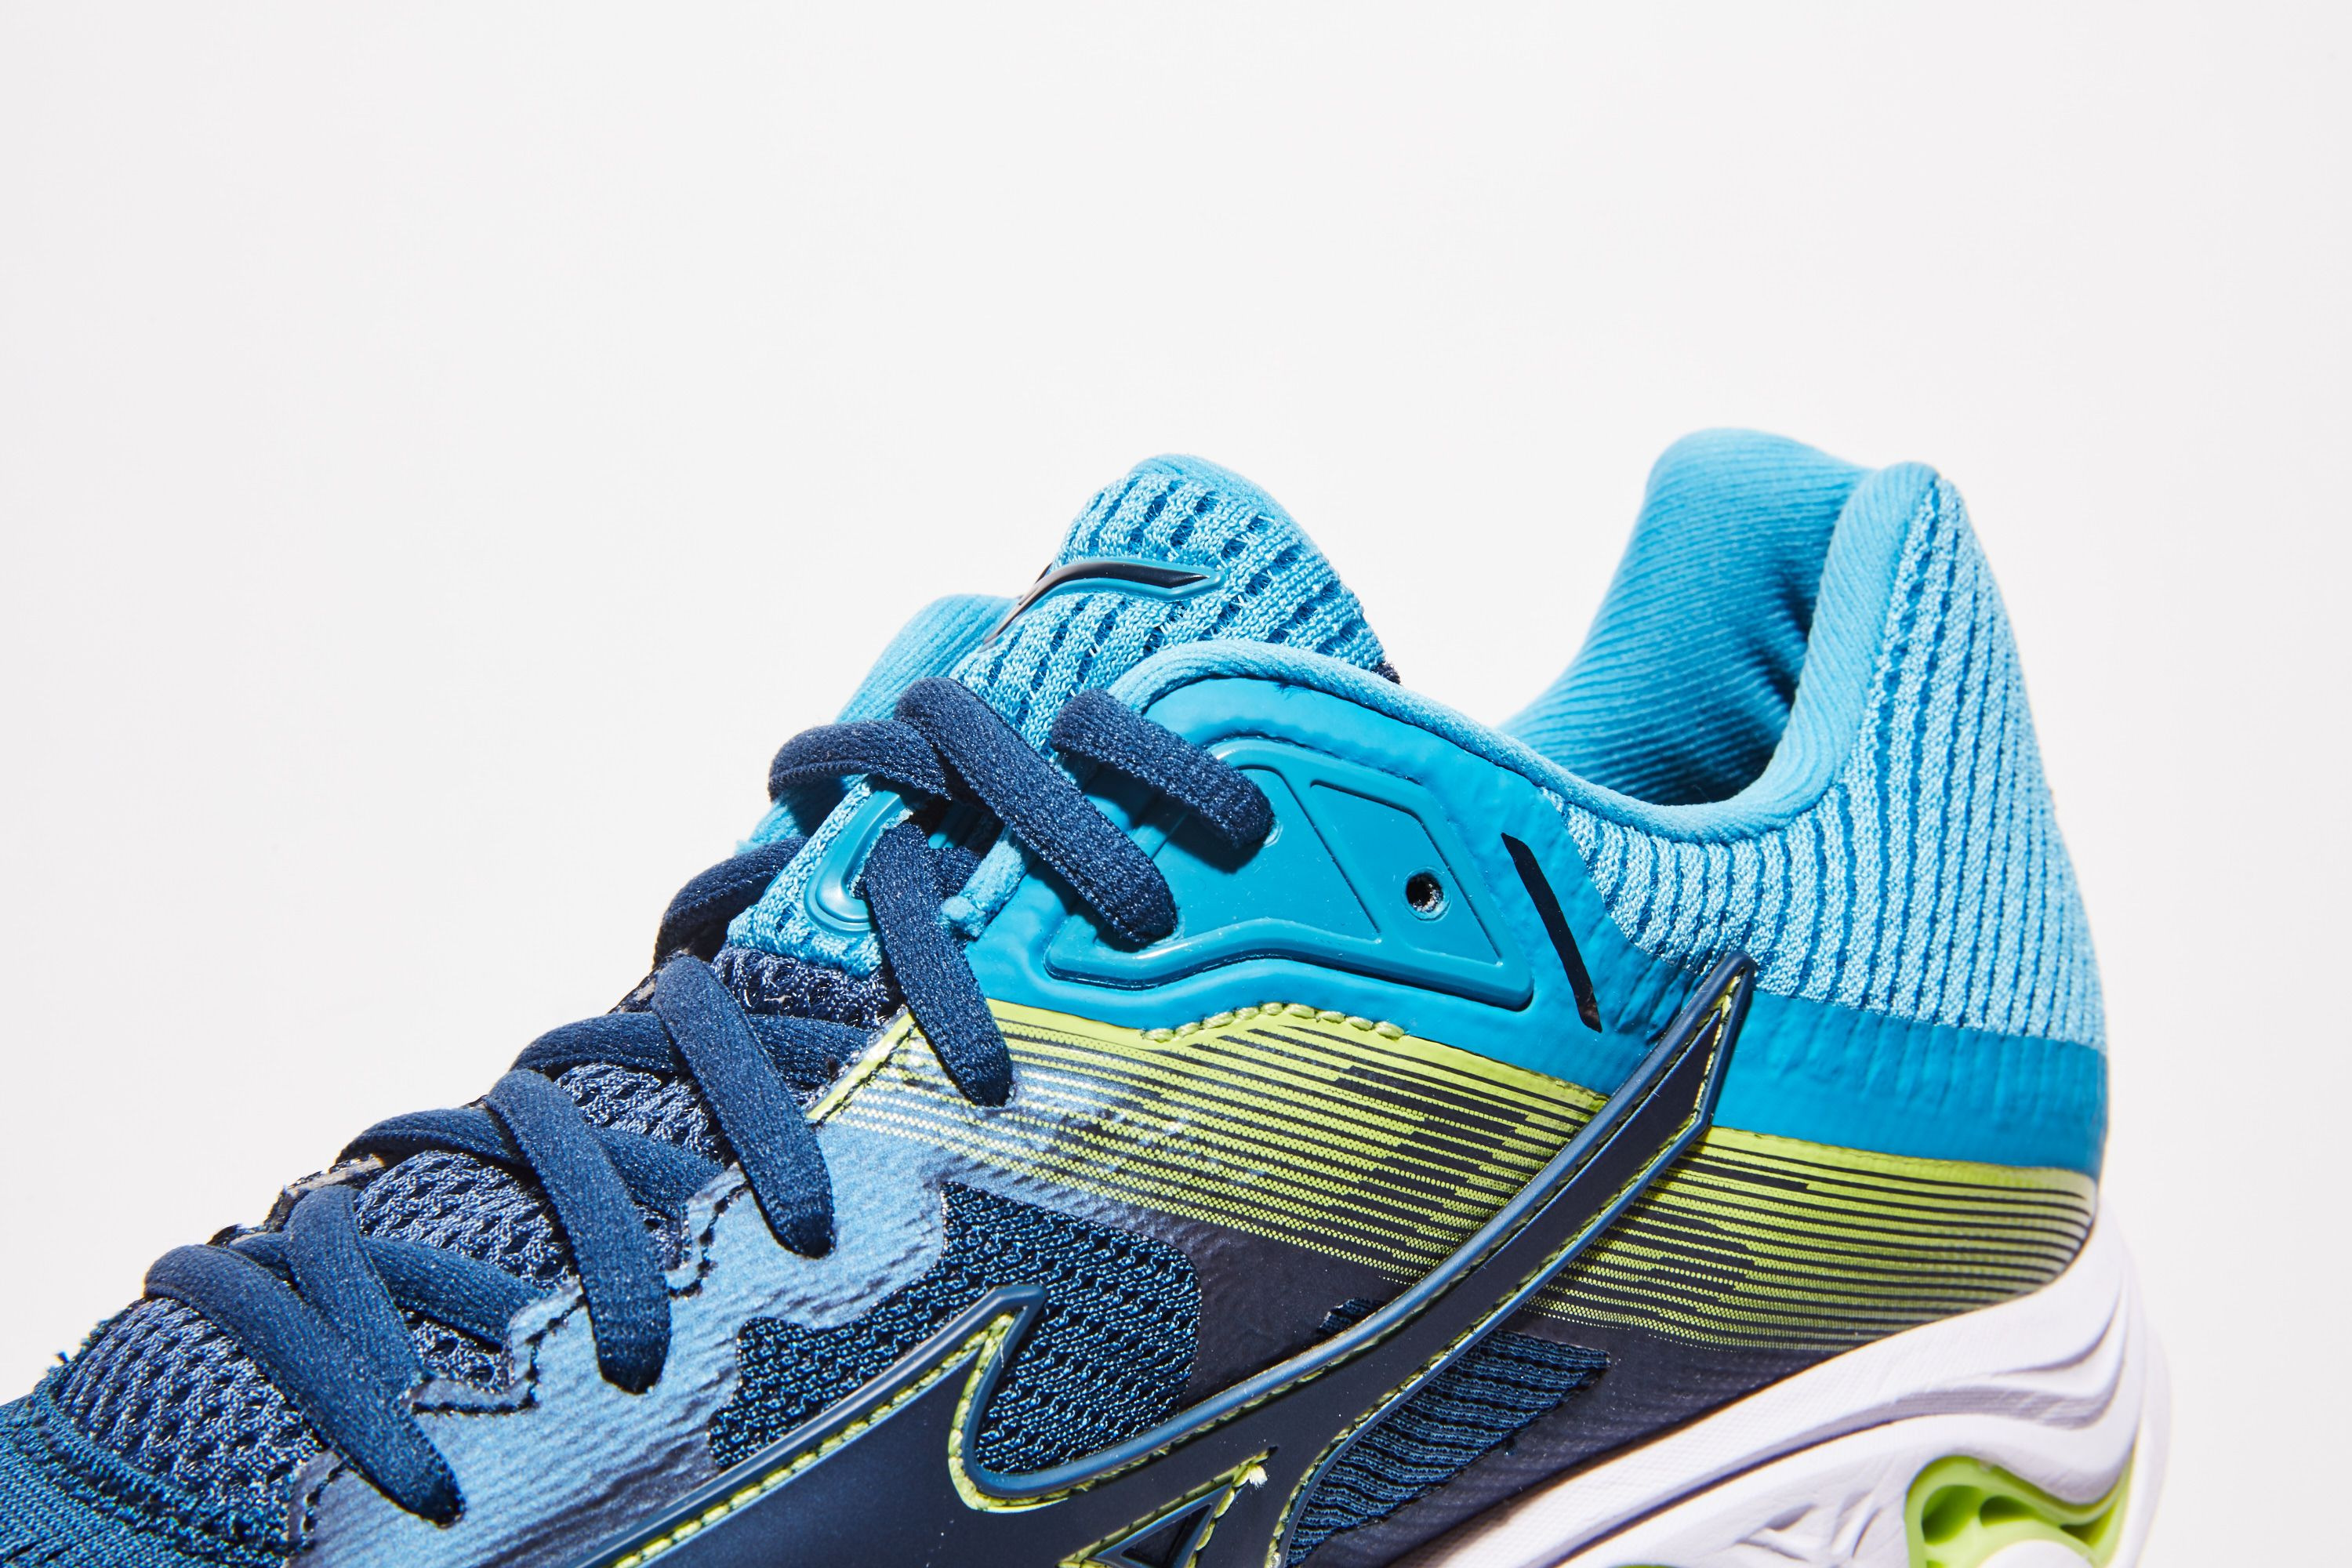 f4ecff4d6afe Mizuno Wave Inspire 15 Review | Stability Running Shoe